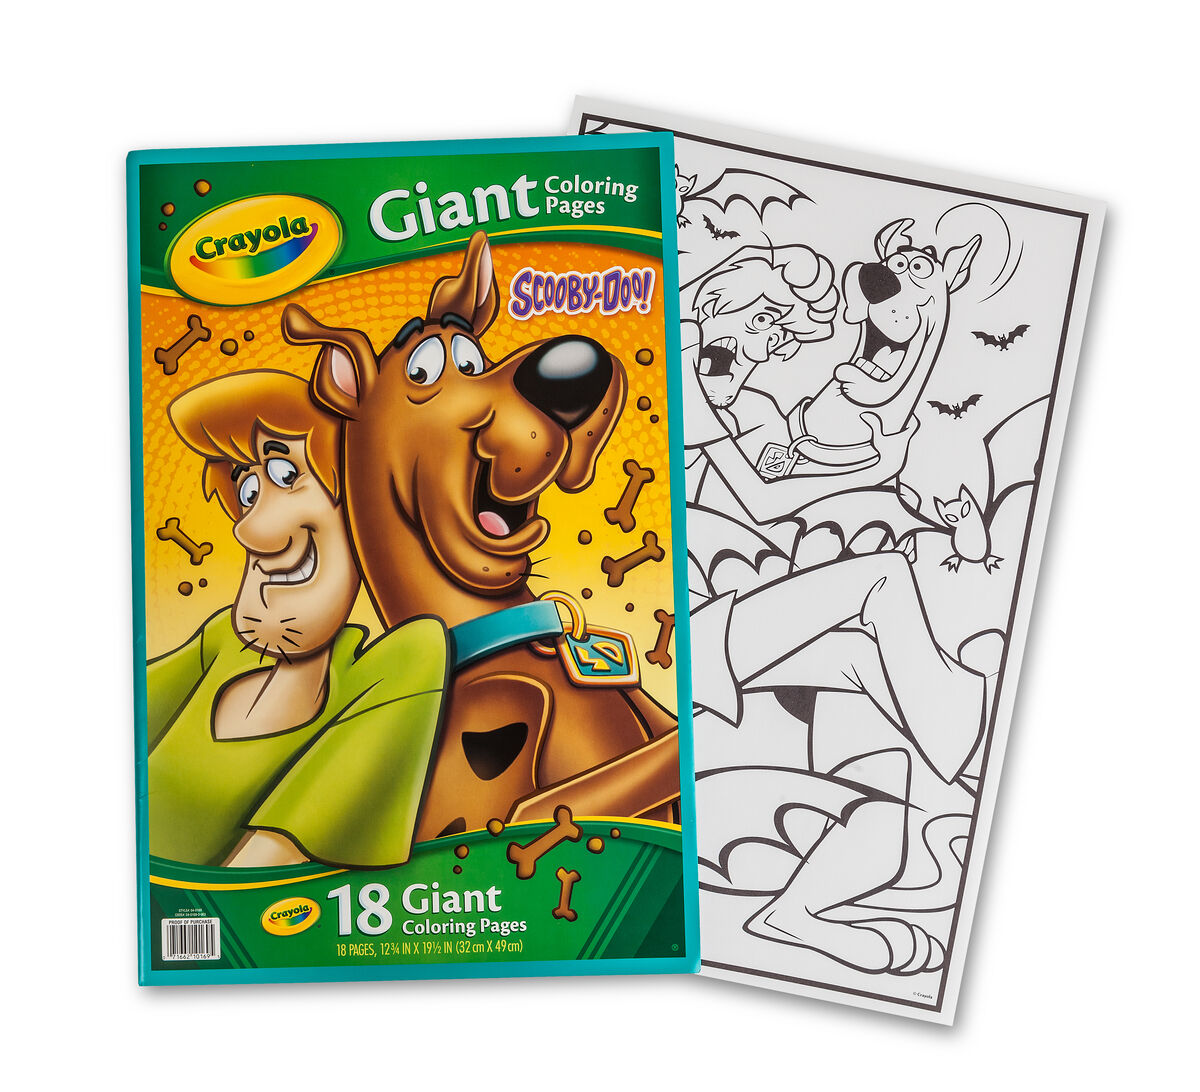 giant coloring pages scooby doo - Giant Coloring Books